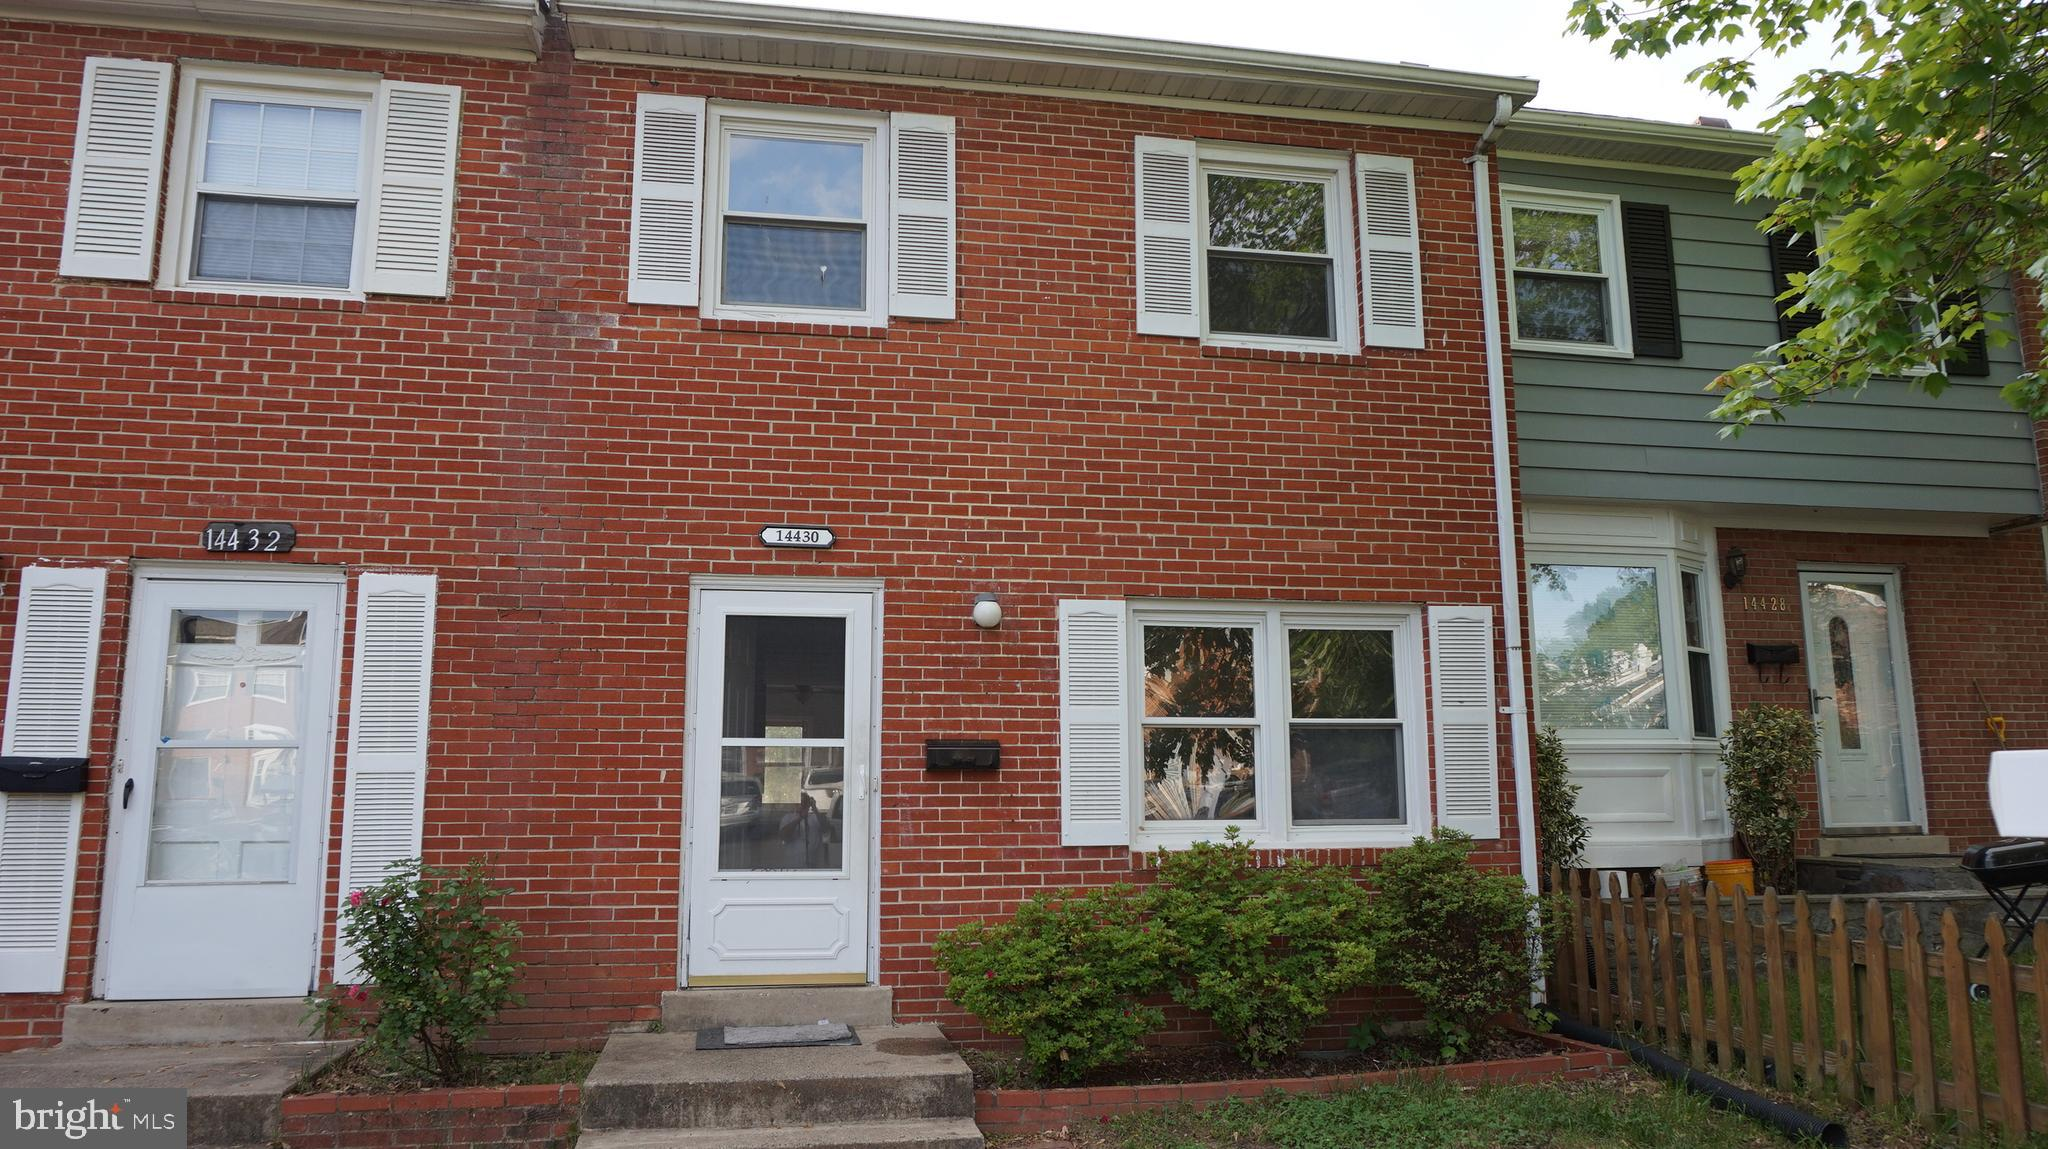 Fantastic opportunity to own this very spacious town house. The home shows very well with gleaming refinished hardwood floors and fresh paint through out. The large kitchen comes with stainless steel appliances and gas cooking. Dishwasher and disposer have been just replaced.  All the appliances and the furnace and air conditioning have been replaced. The basement is a walk out and is fully finished and comes with wood burning fire place. The basement also includes a full bath and finished den. The back yard comes with paved patio and fully fenced yard. You will love the space this home is bigger than you think!!